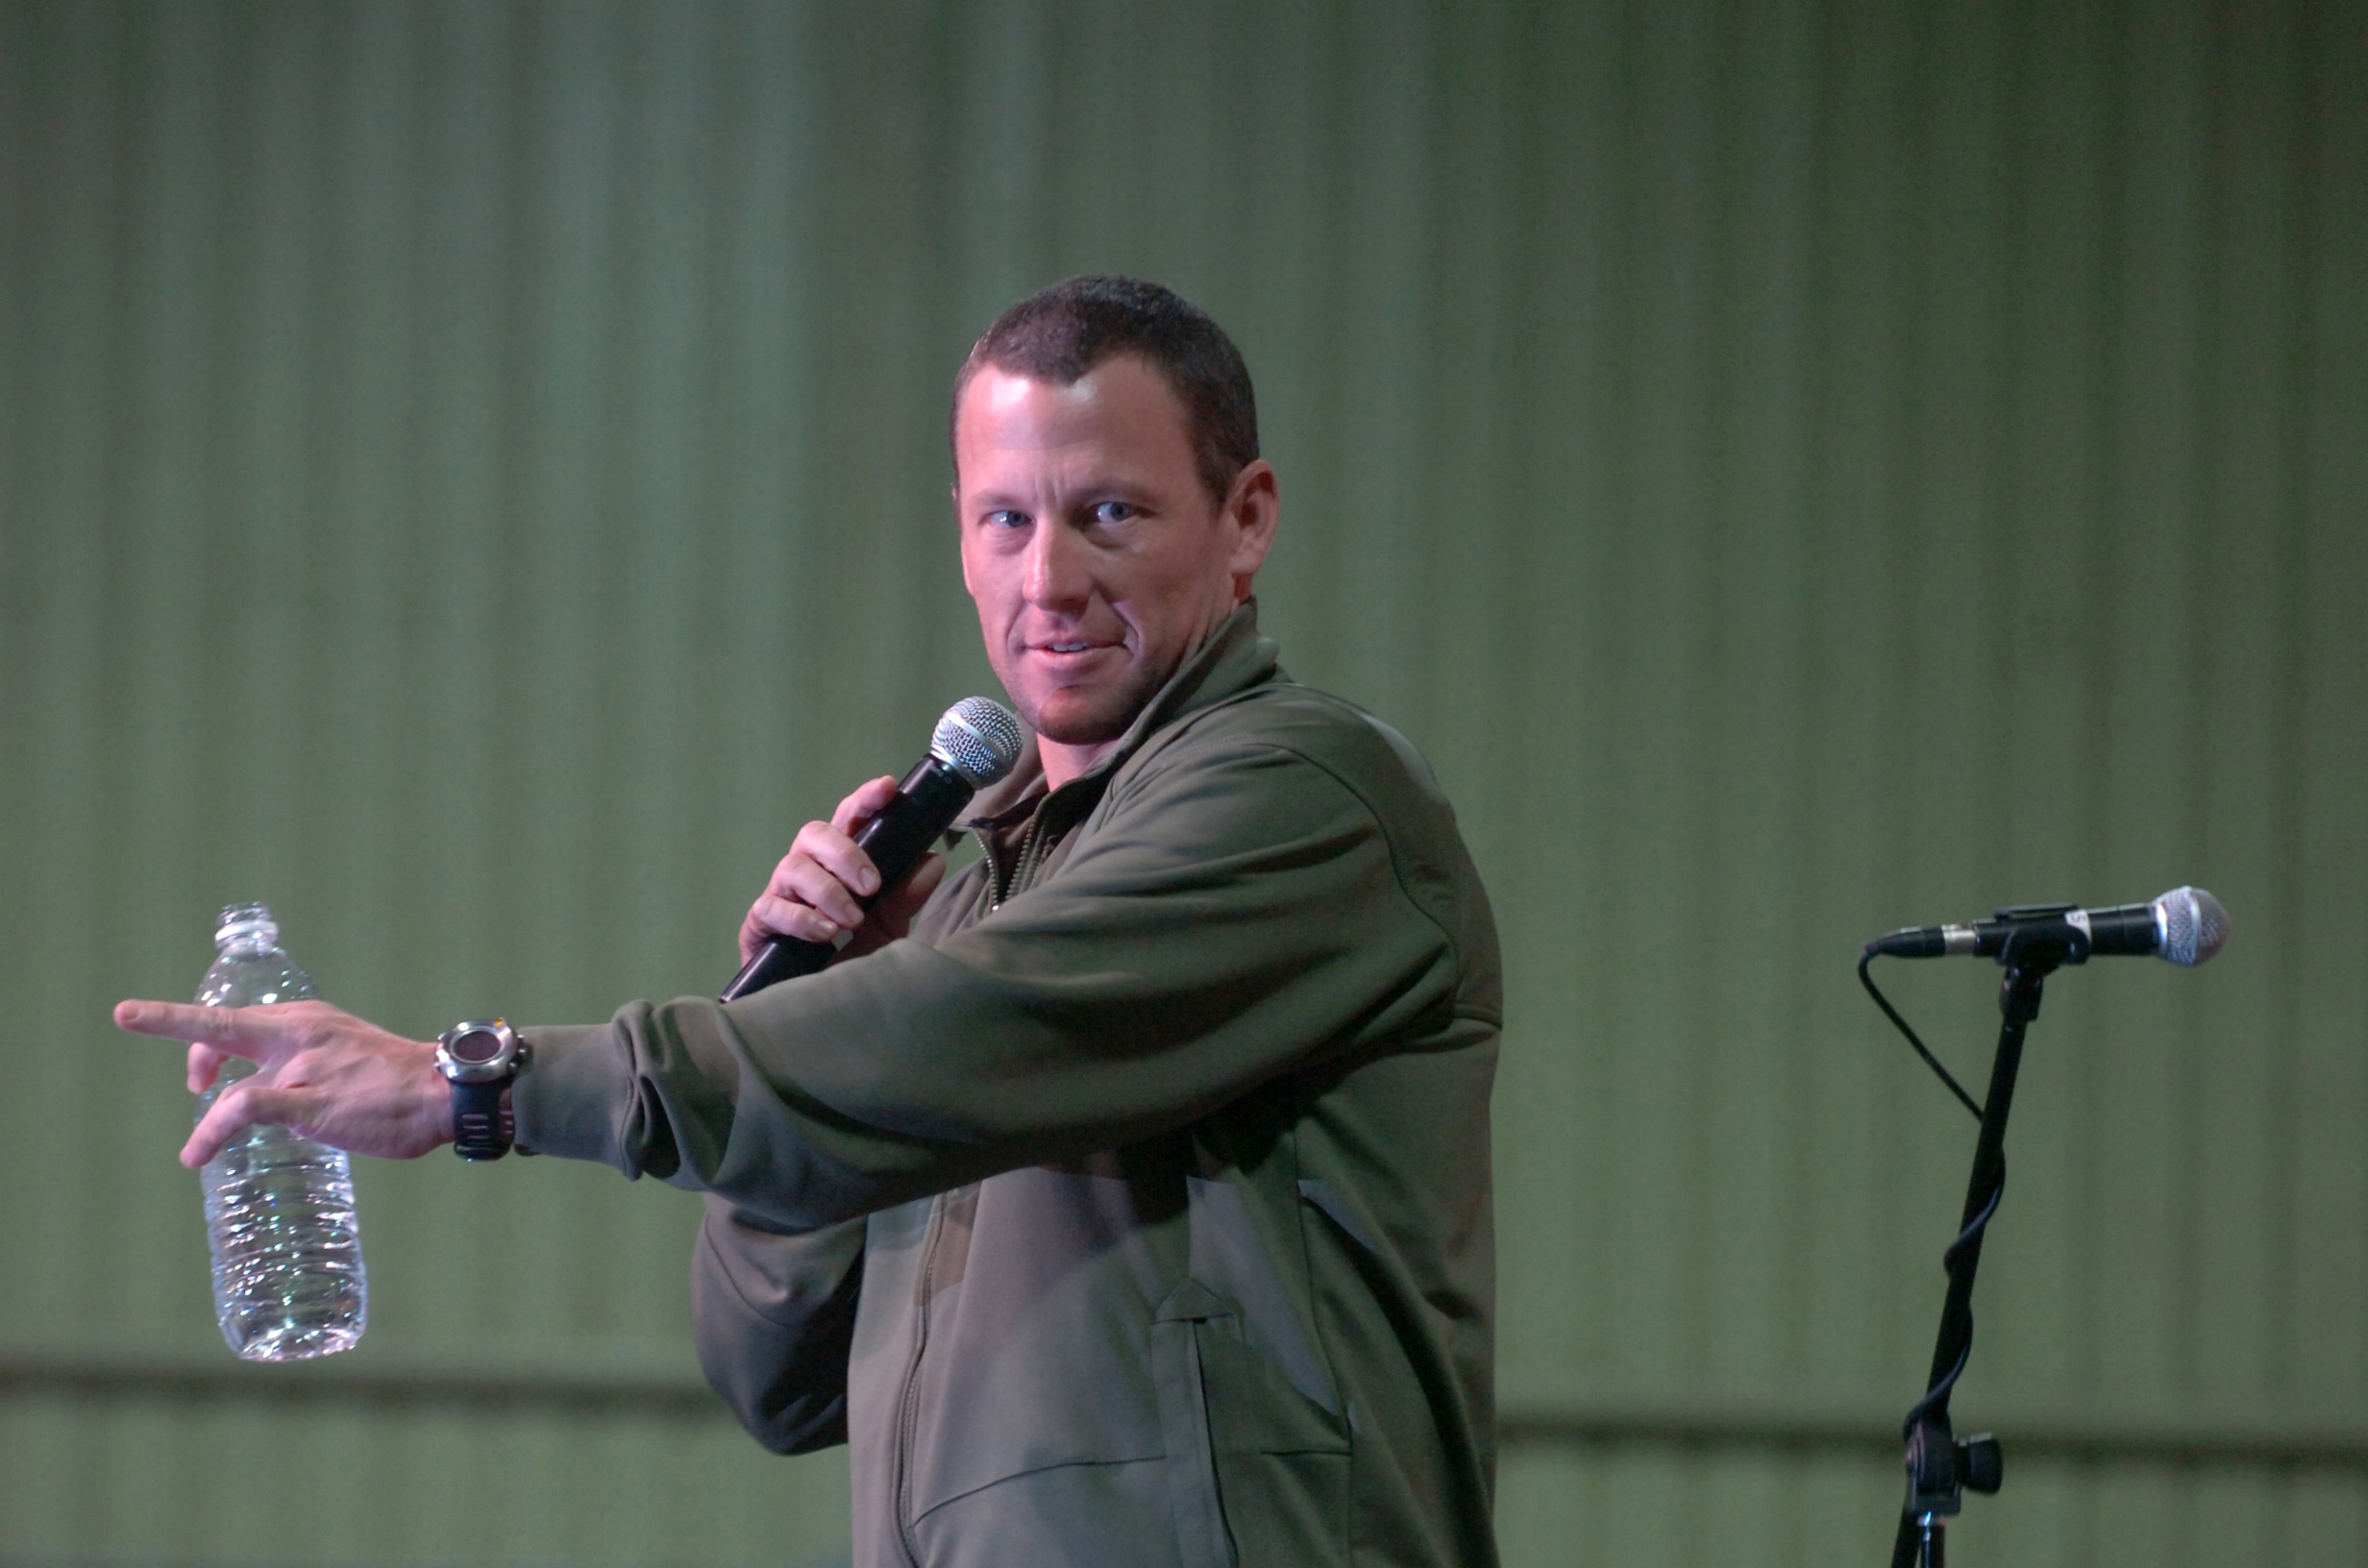 lance armstrong s doping and lying The original youtube video of this press conference has comments disabled so, in the light of what the world now knows, i'm uploading it on my channel where.